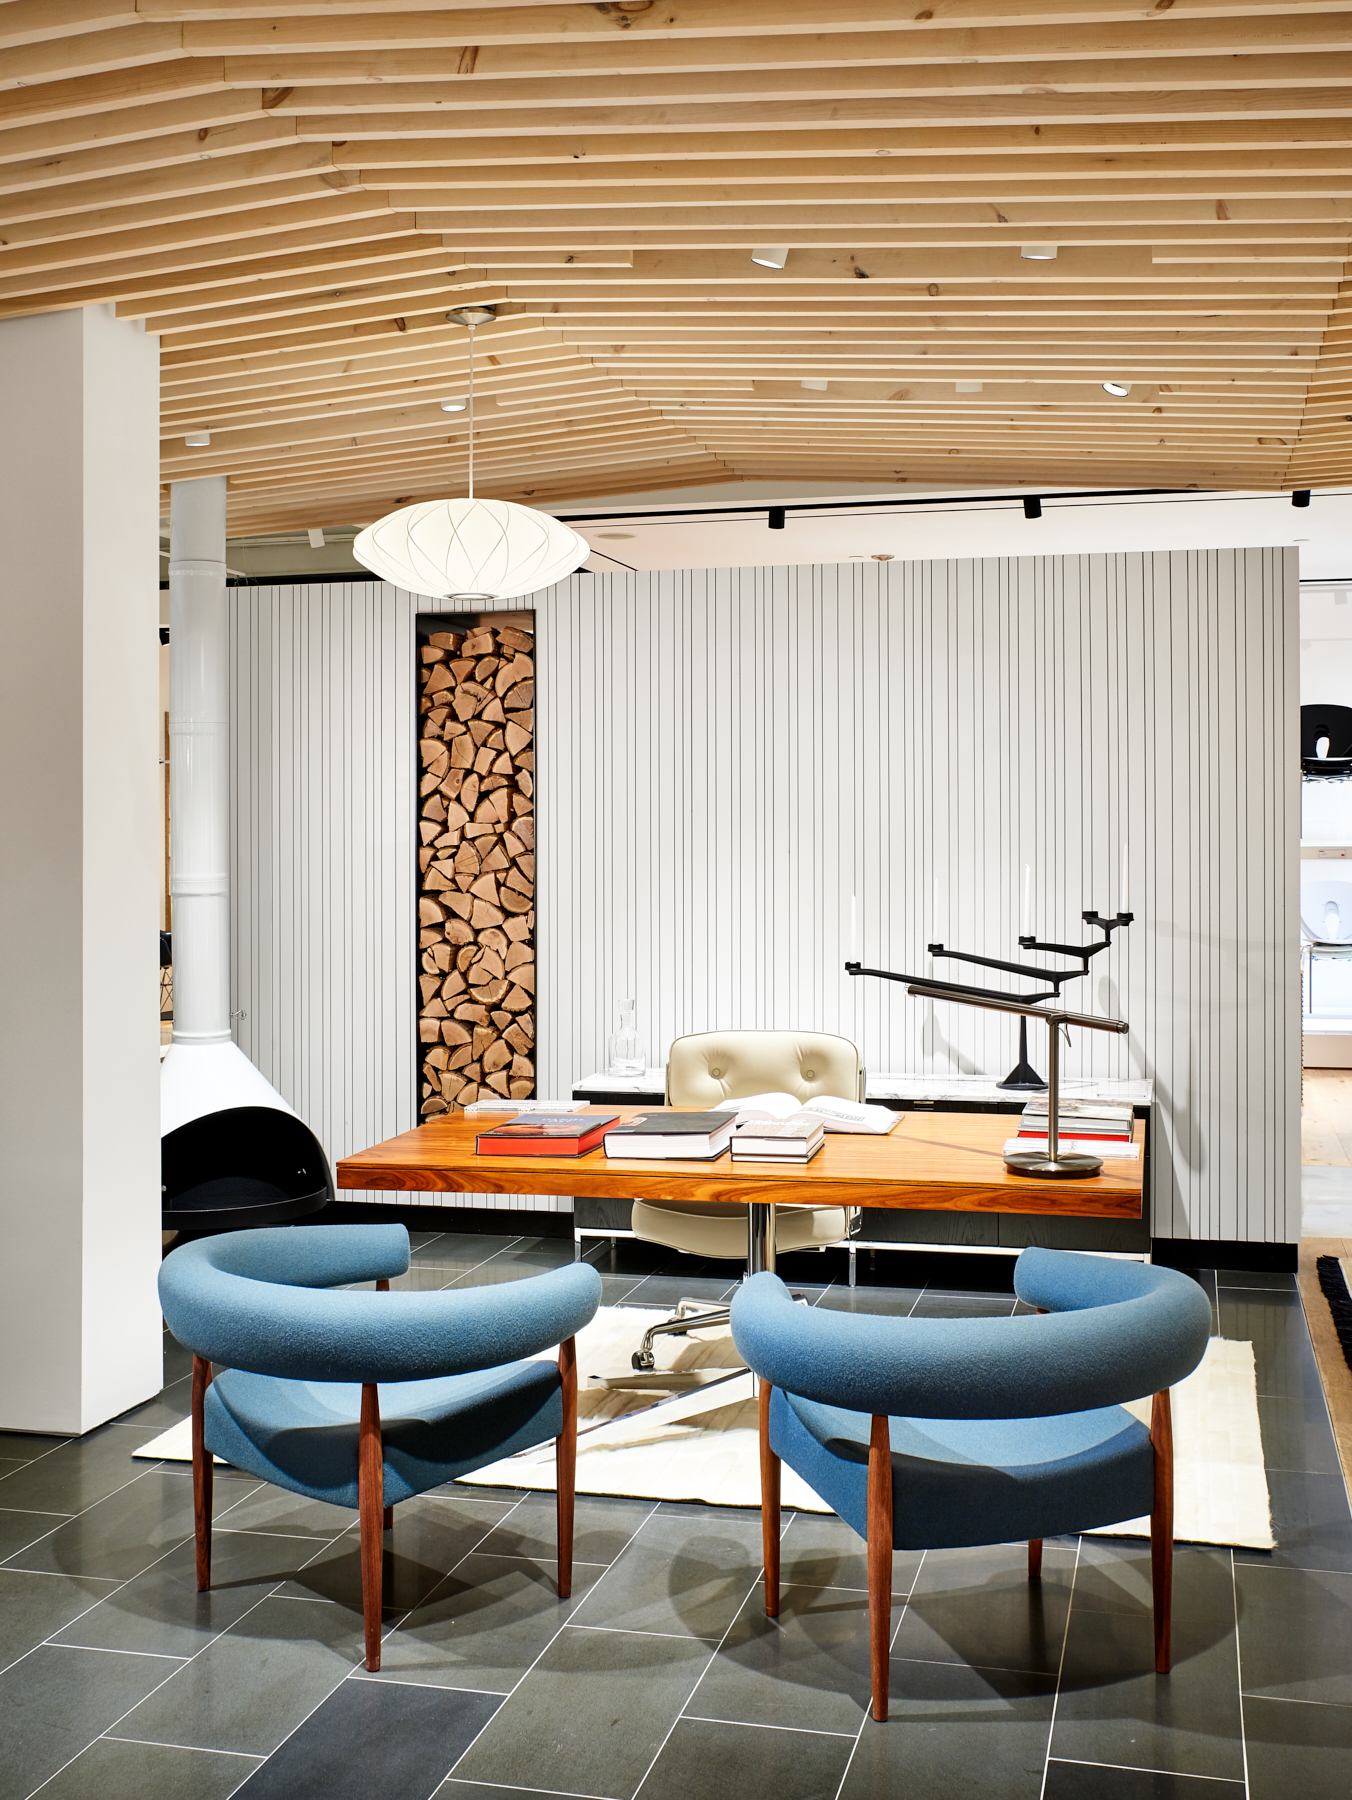 Interior workspace created by NewStudio Architecture for Design Within Reach in Edina, Minnesota